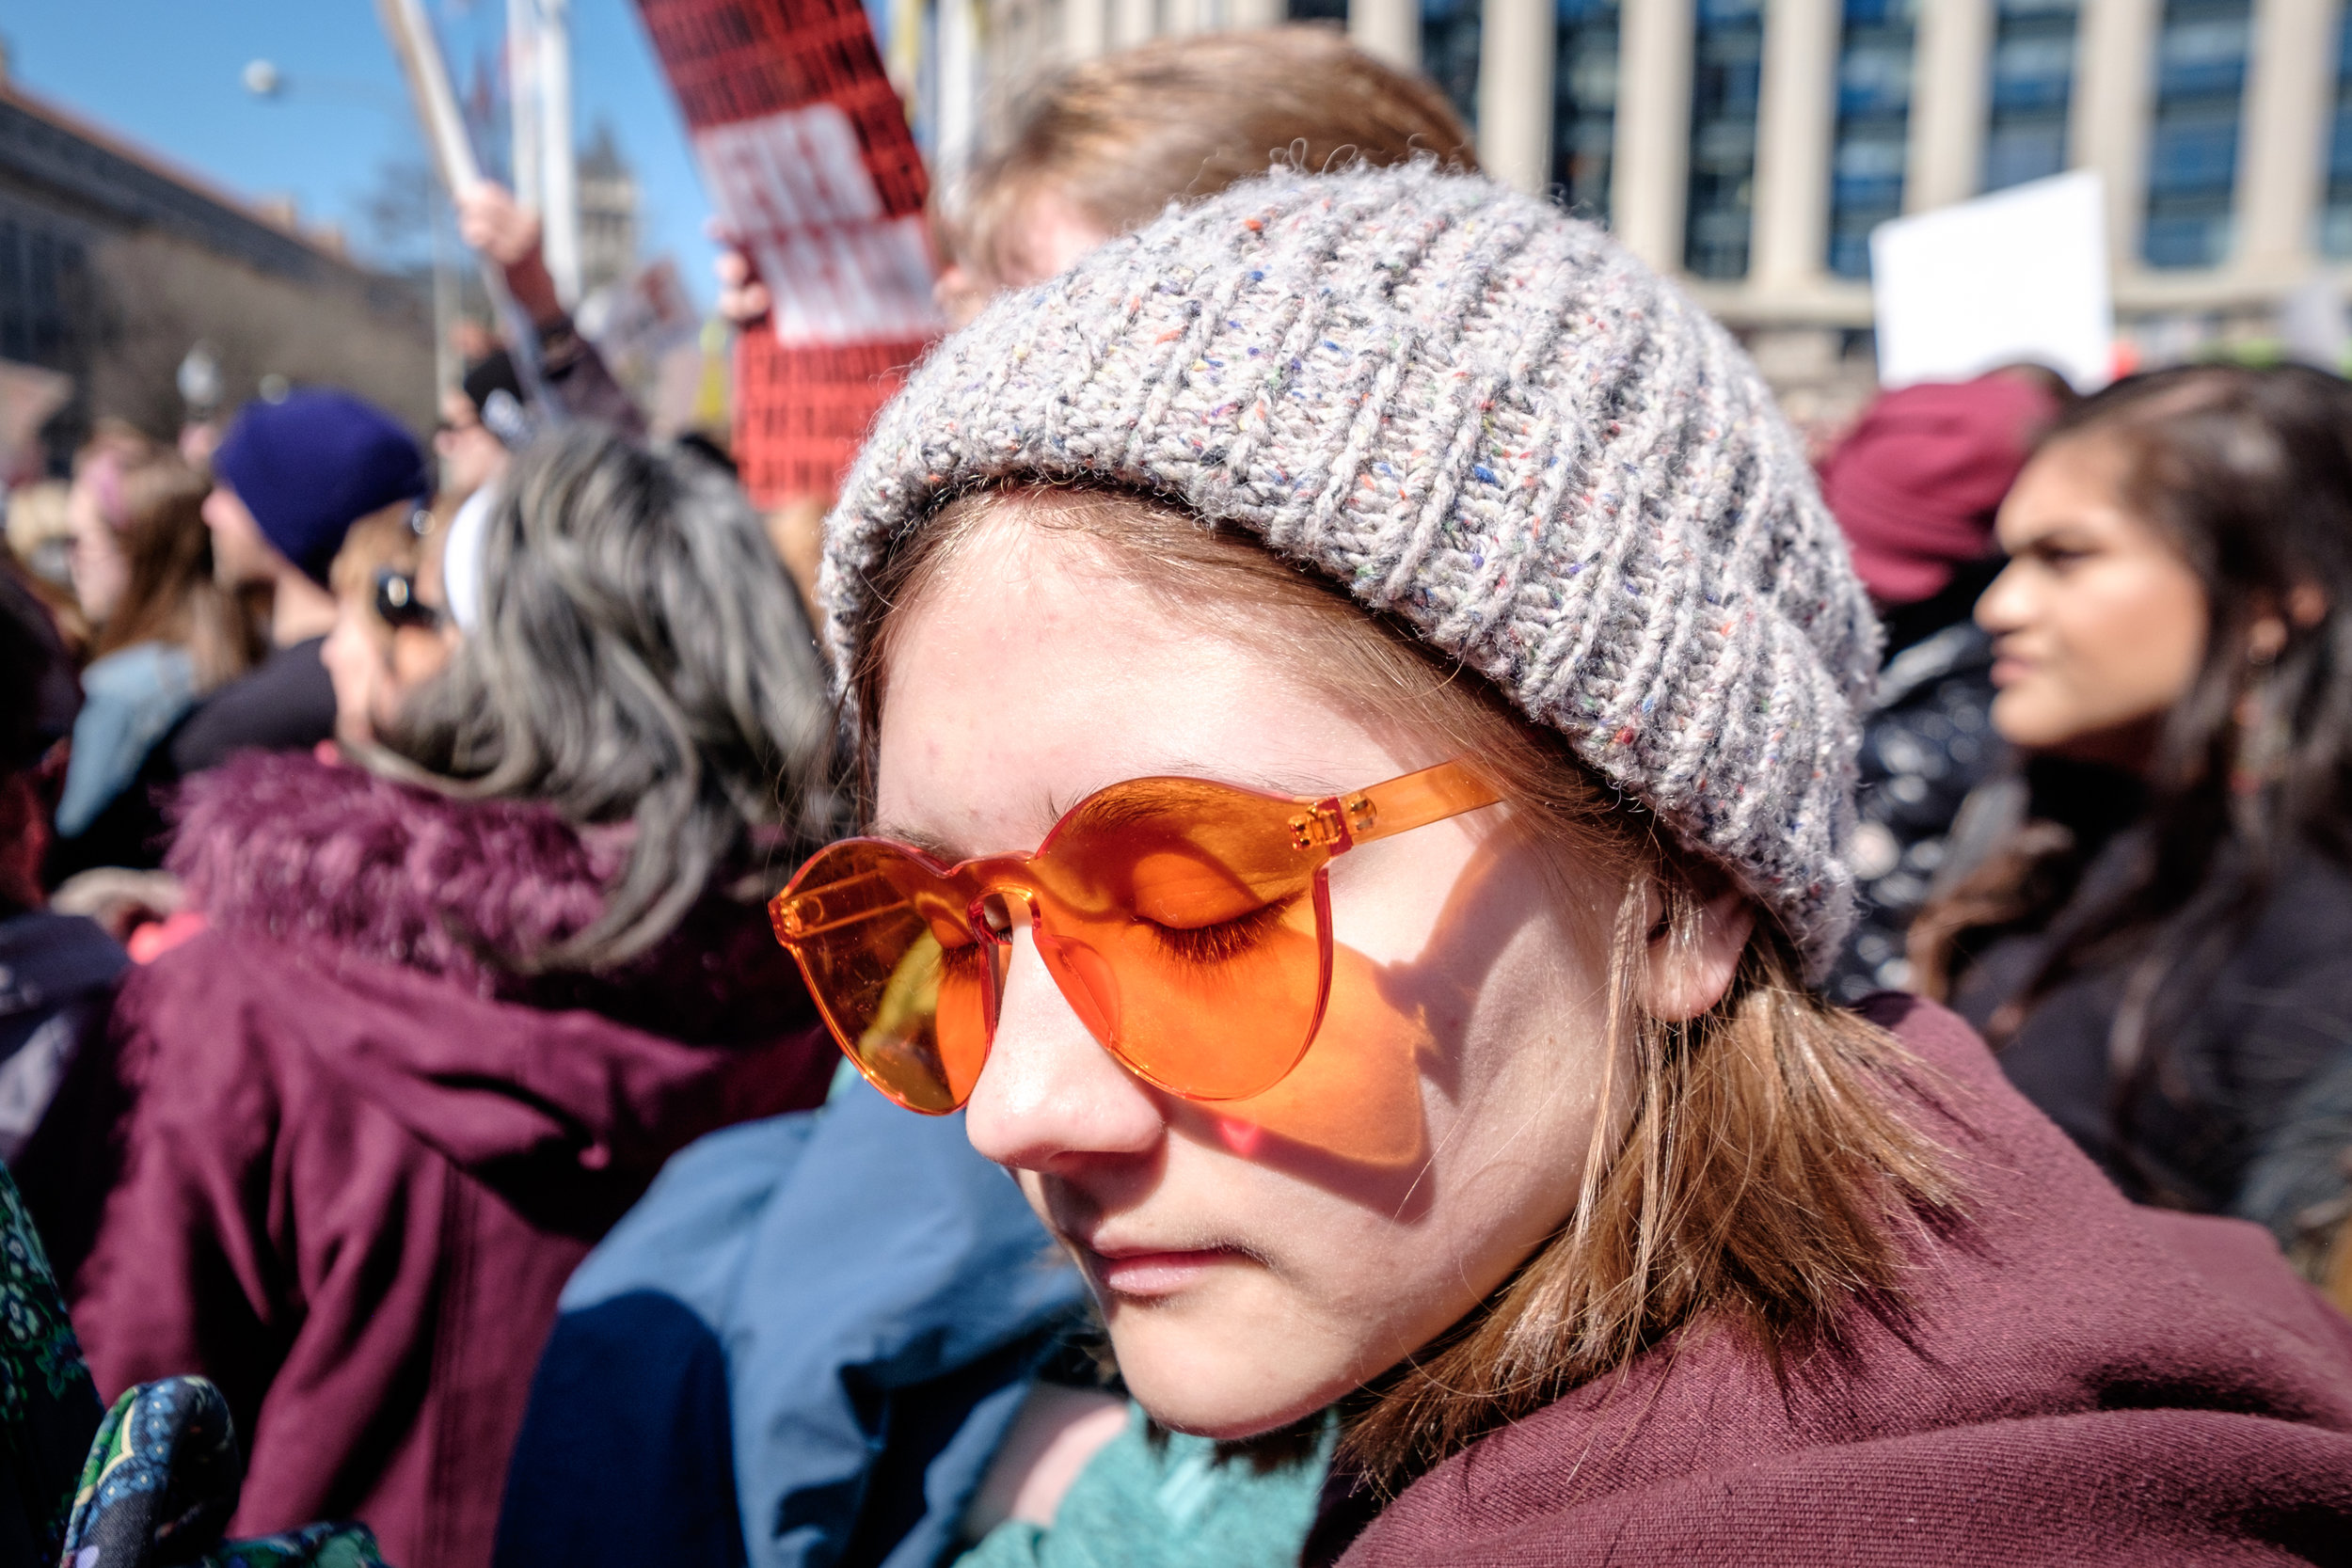 "Josie Kunkle-Schoen, 15, from Madison, WI, attended the March for Our Lives Rally on Saturday, March 24, 2018 in Washington, DC. She offered the following, ""I'm here because I think that… it's really scary, honestly… having dreams about having your school shot up and stuff is really scary and things are so accessible and it needs to be changed. There needs to be change."" March For Our Lives is a student-led movement   to end gun violence in the United States. Hundreds of thousands of people took to the streets of Washington, DC to demand that peoples' lives and safety become a priority and to put an end to gun violence in communities and schools immediately. Over 800 sibling marches took place across the U.S. and internationally."